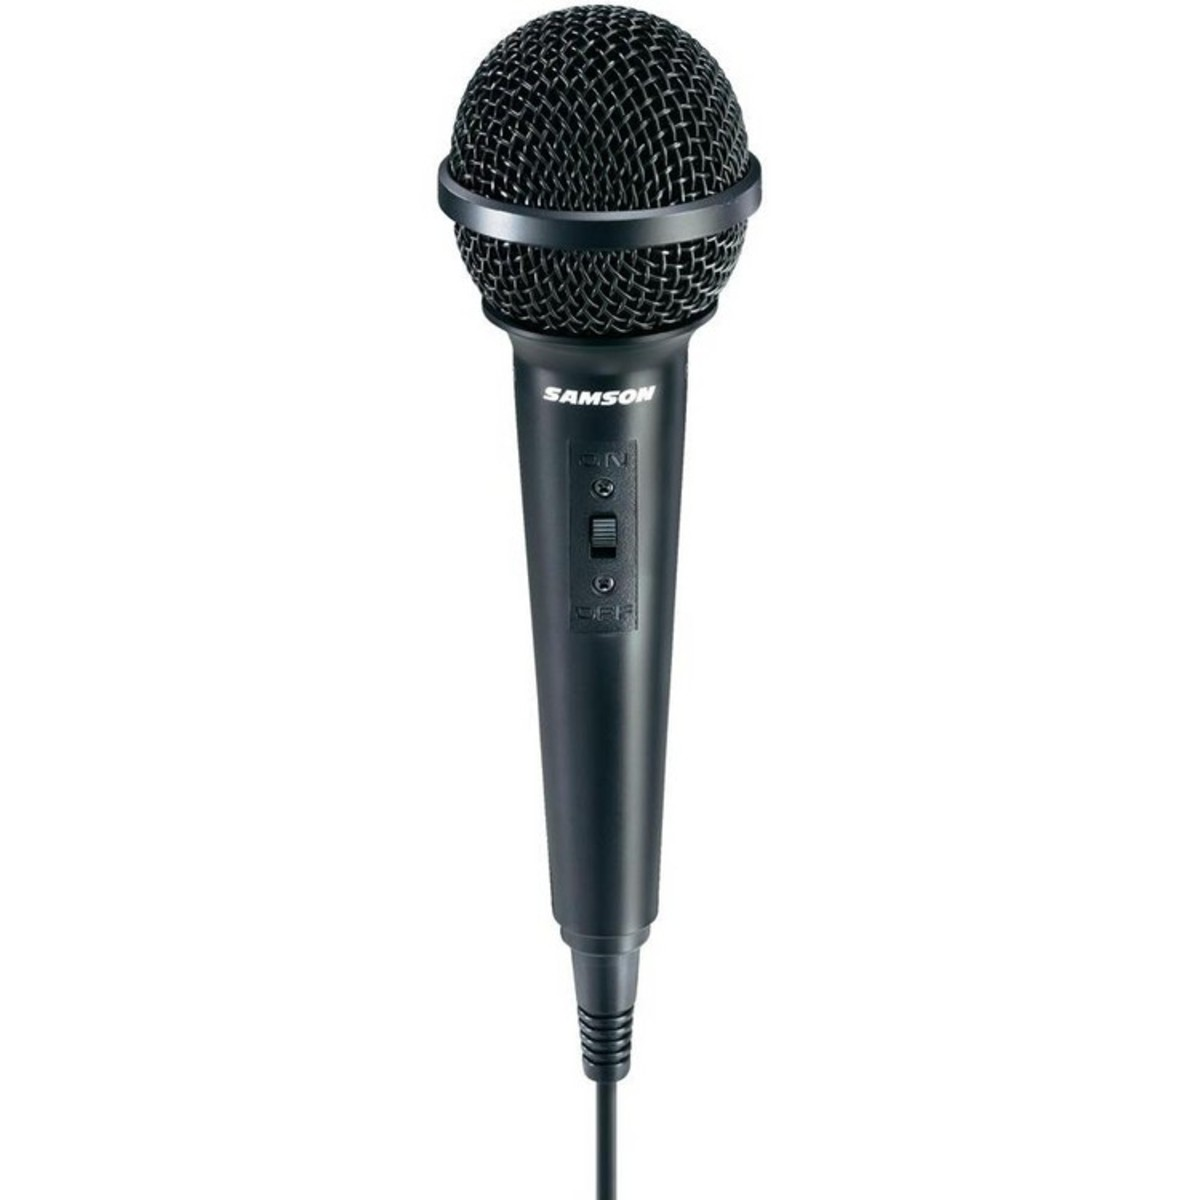 Image of Samson R10S Dynamic Mic with Switch